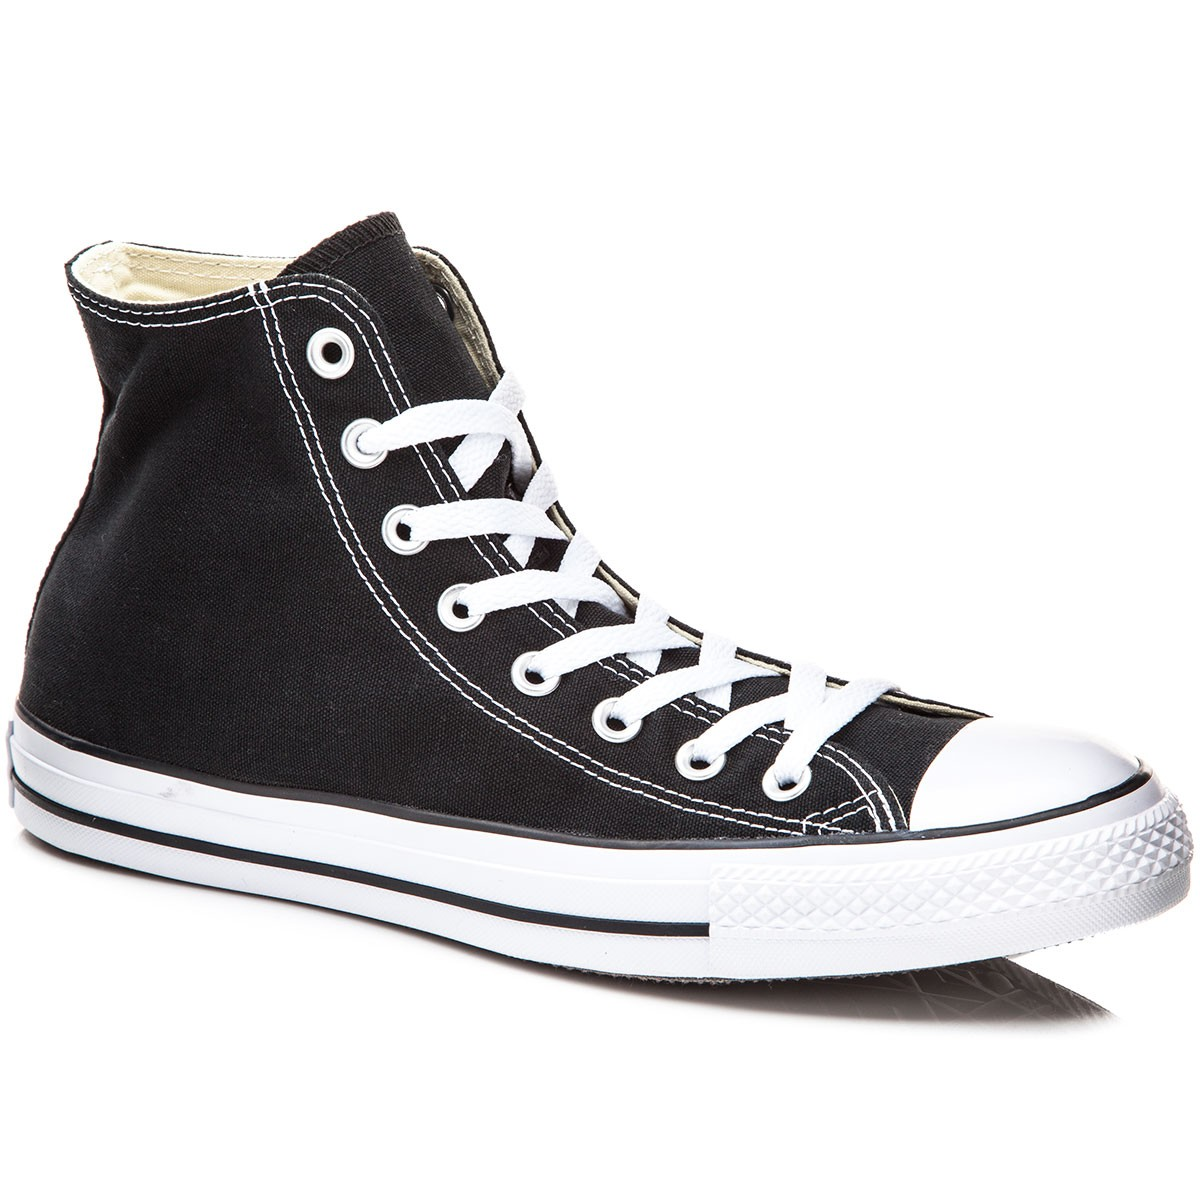 converse chuck taylor all star high shoes. Black Bedroom Furniture Sets. Home Design Ideas